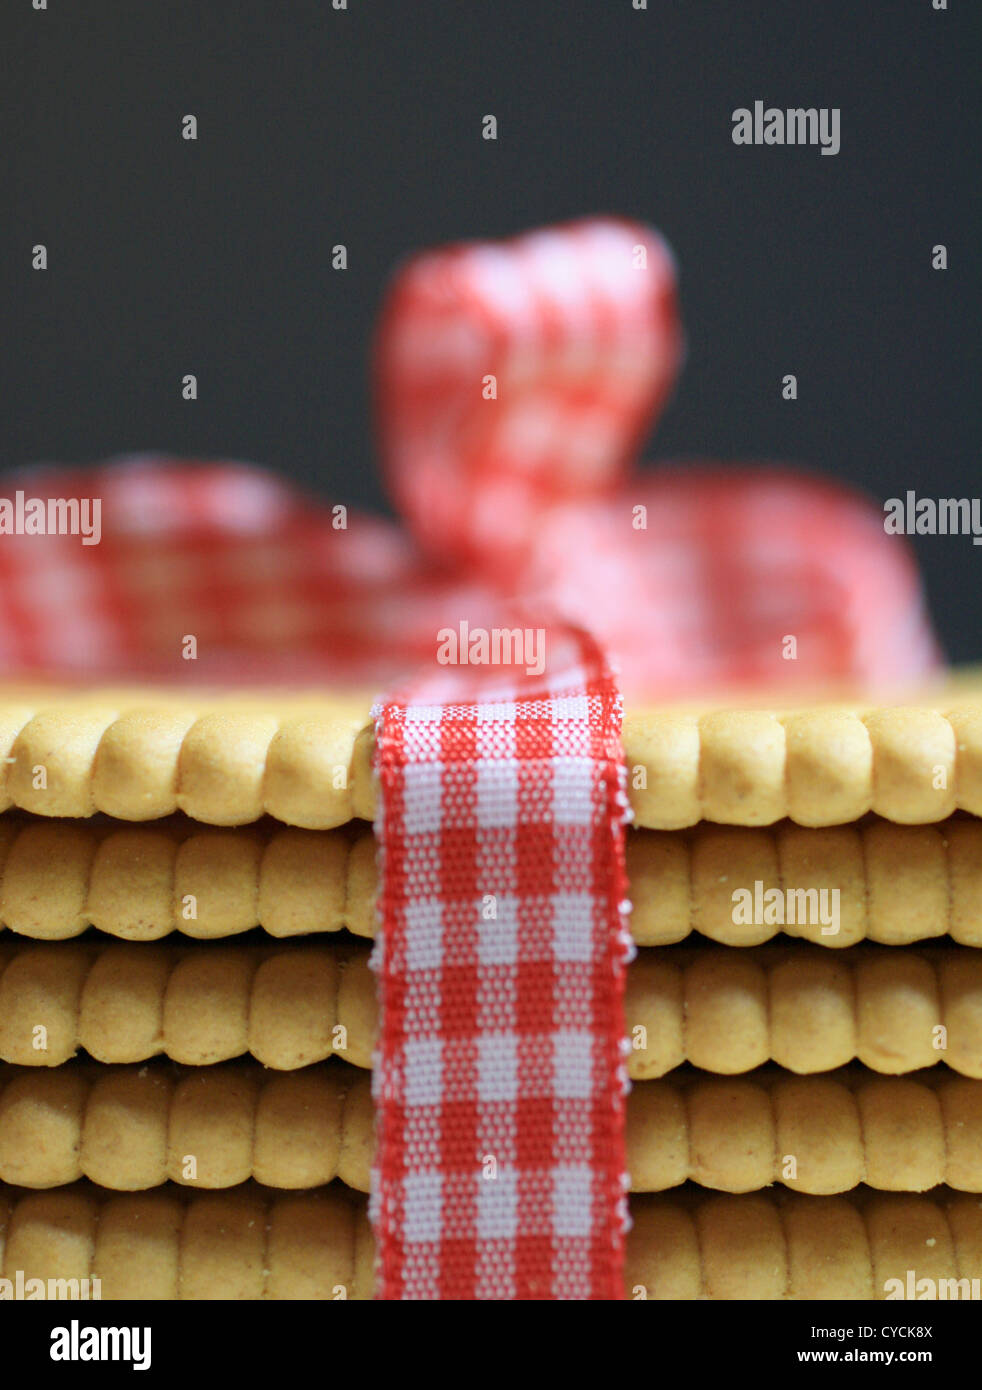 shortbread - Stock Image